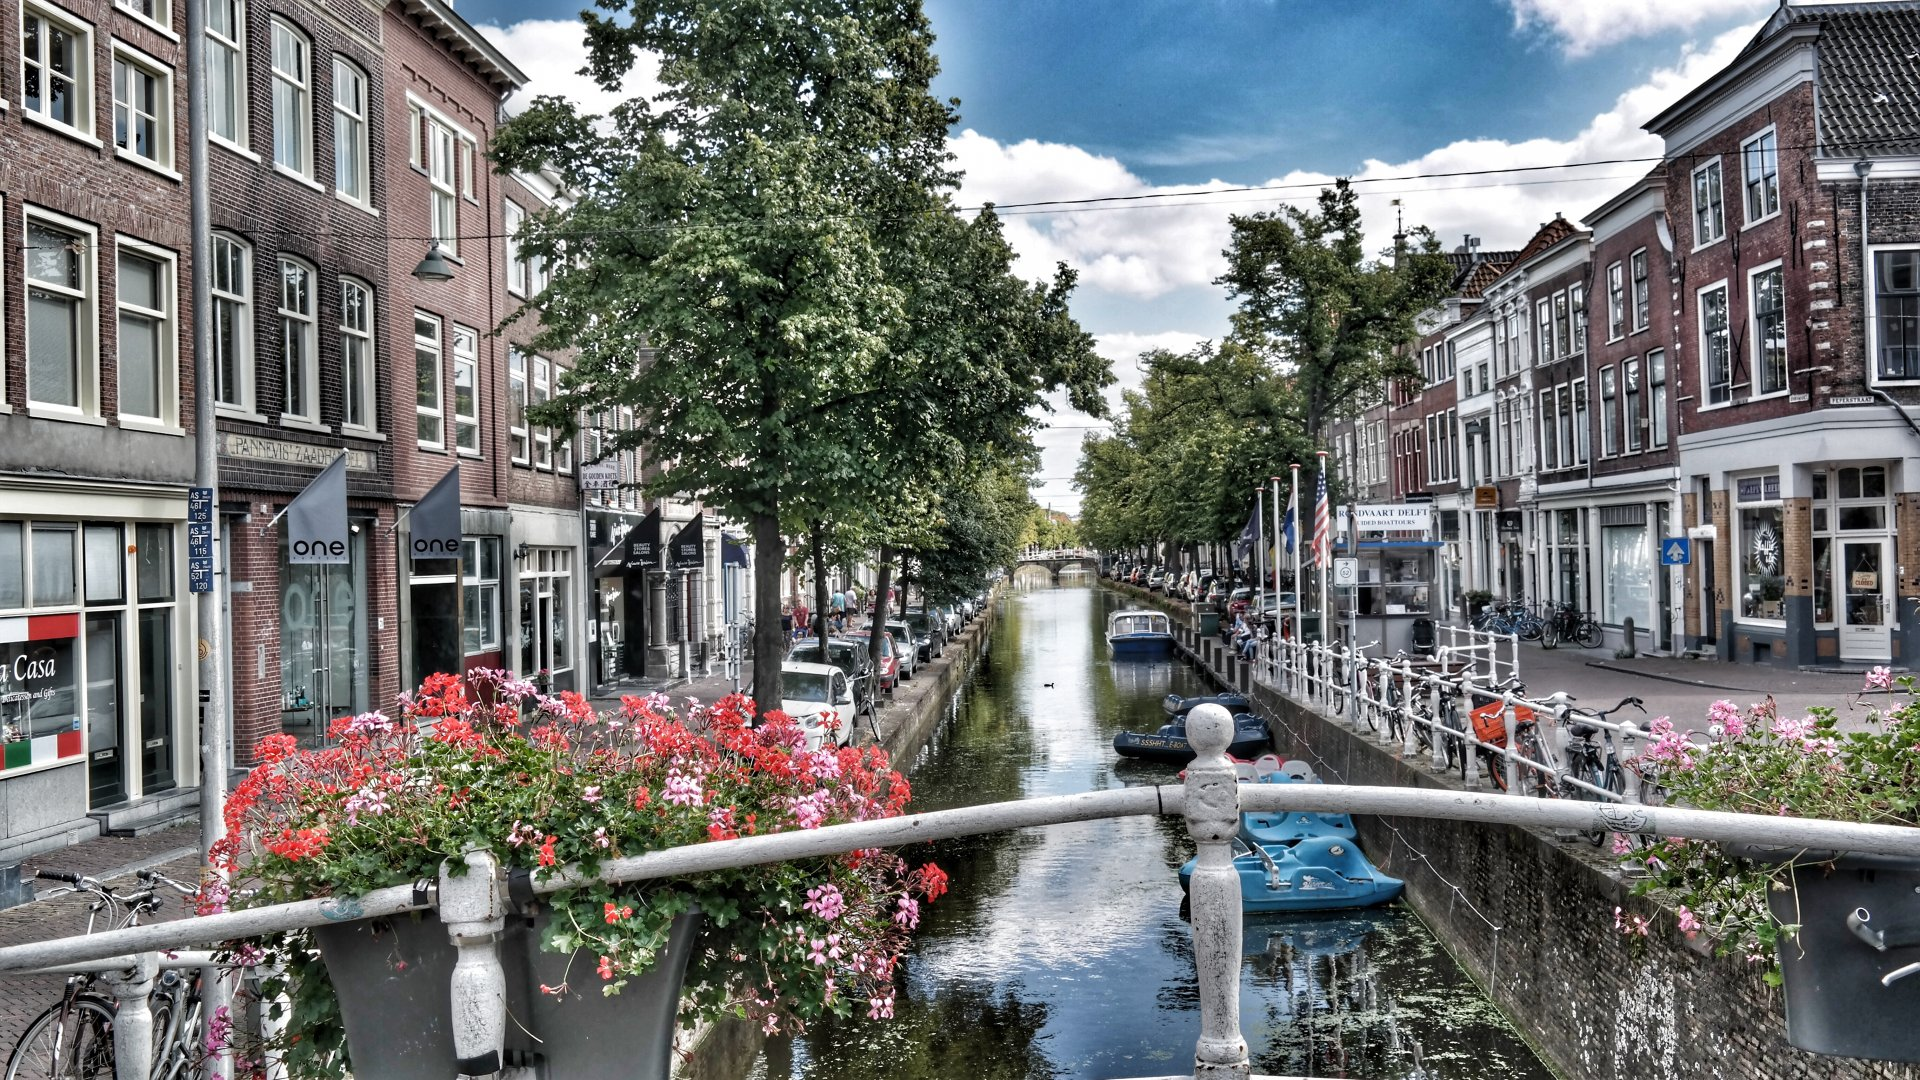 architecture_bridge_buildings_canal_city_daylight_exterior_family_home_house_outdoors_sight_street_t